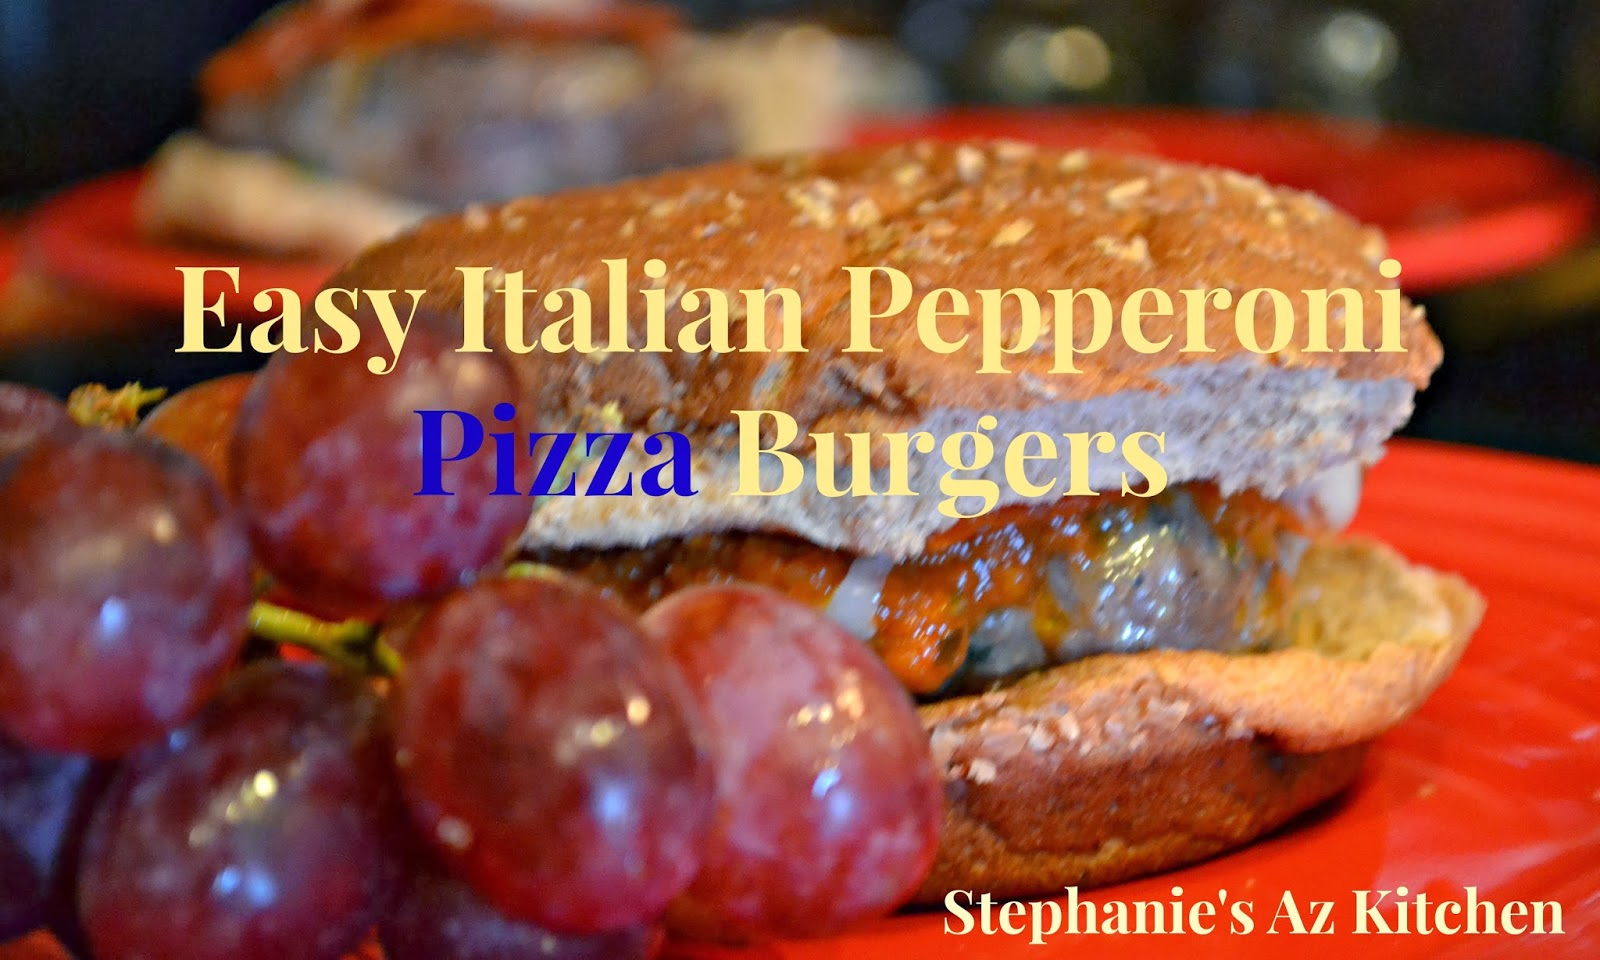 Stephanie's AZ Kitchen: Easy Italian Pepperoni Pizza Burgers